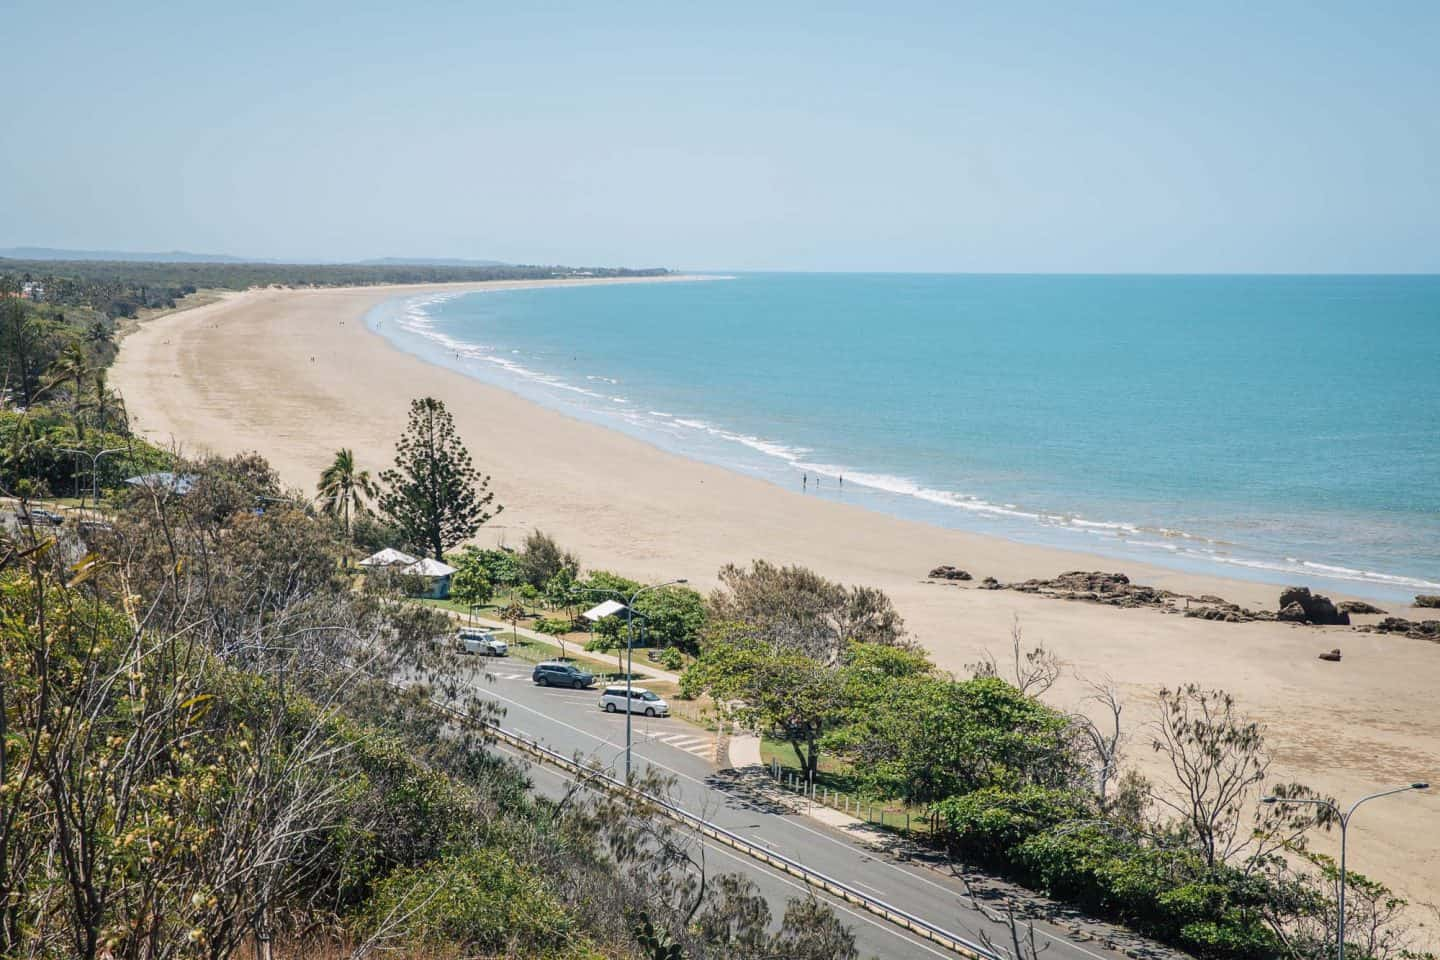 yeppoon beaches, beaches yeppoon, best beaches in yeppoon, beaches in yeppoon, farnborough beach